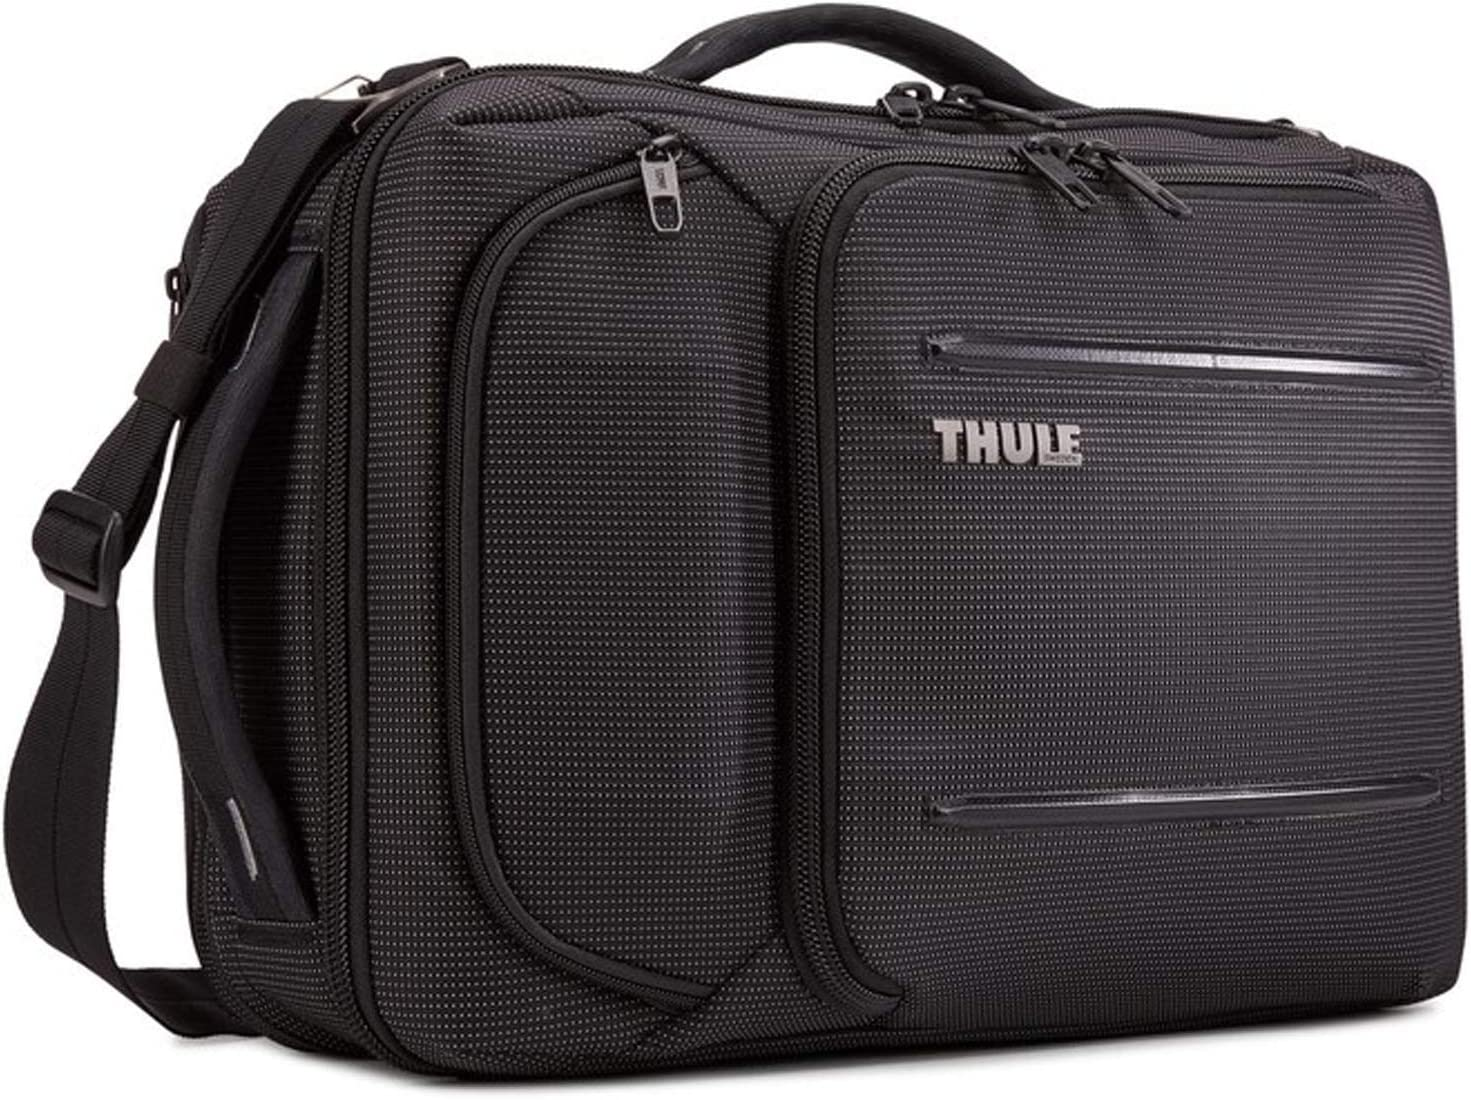 "Thule Crossover 2 Convertible 15.6"" Laptop Bag"